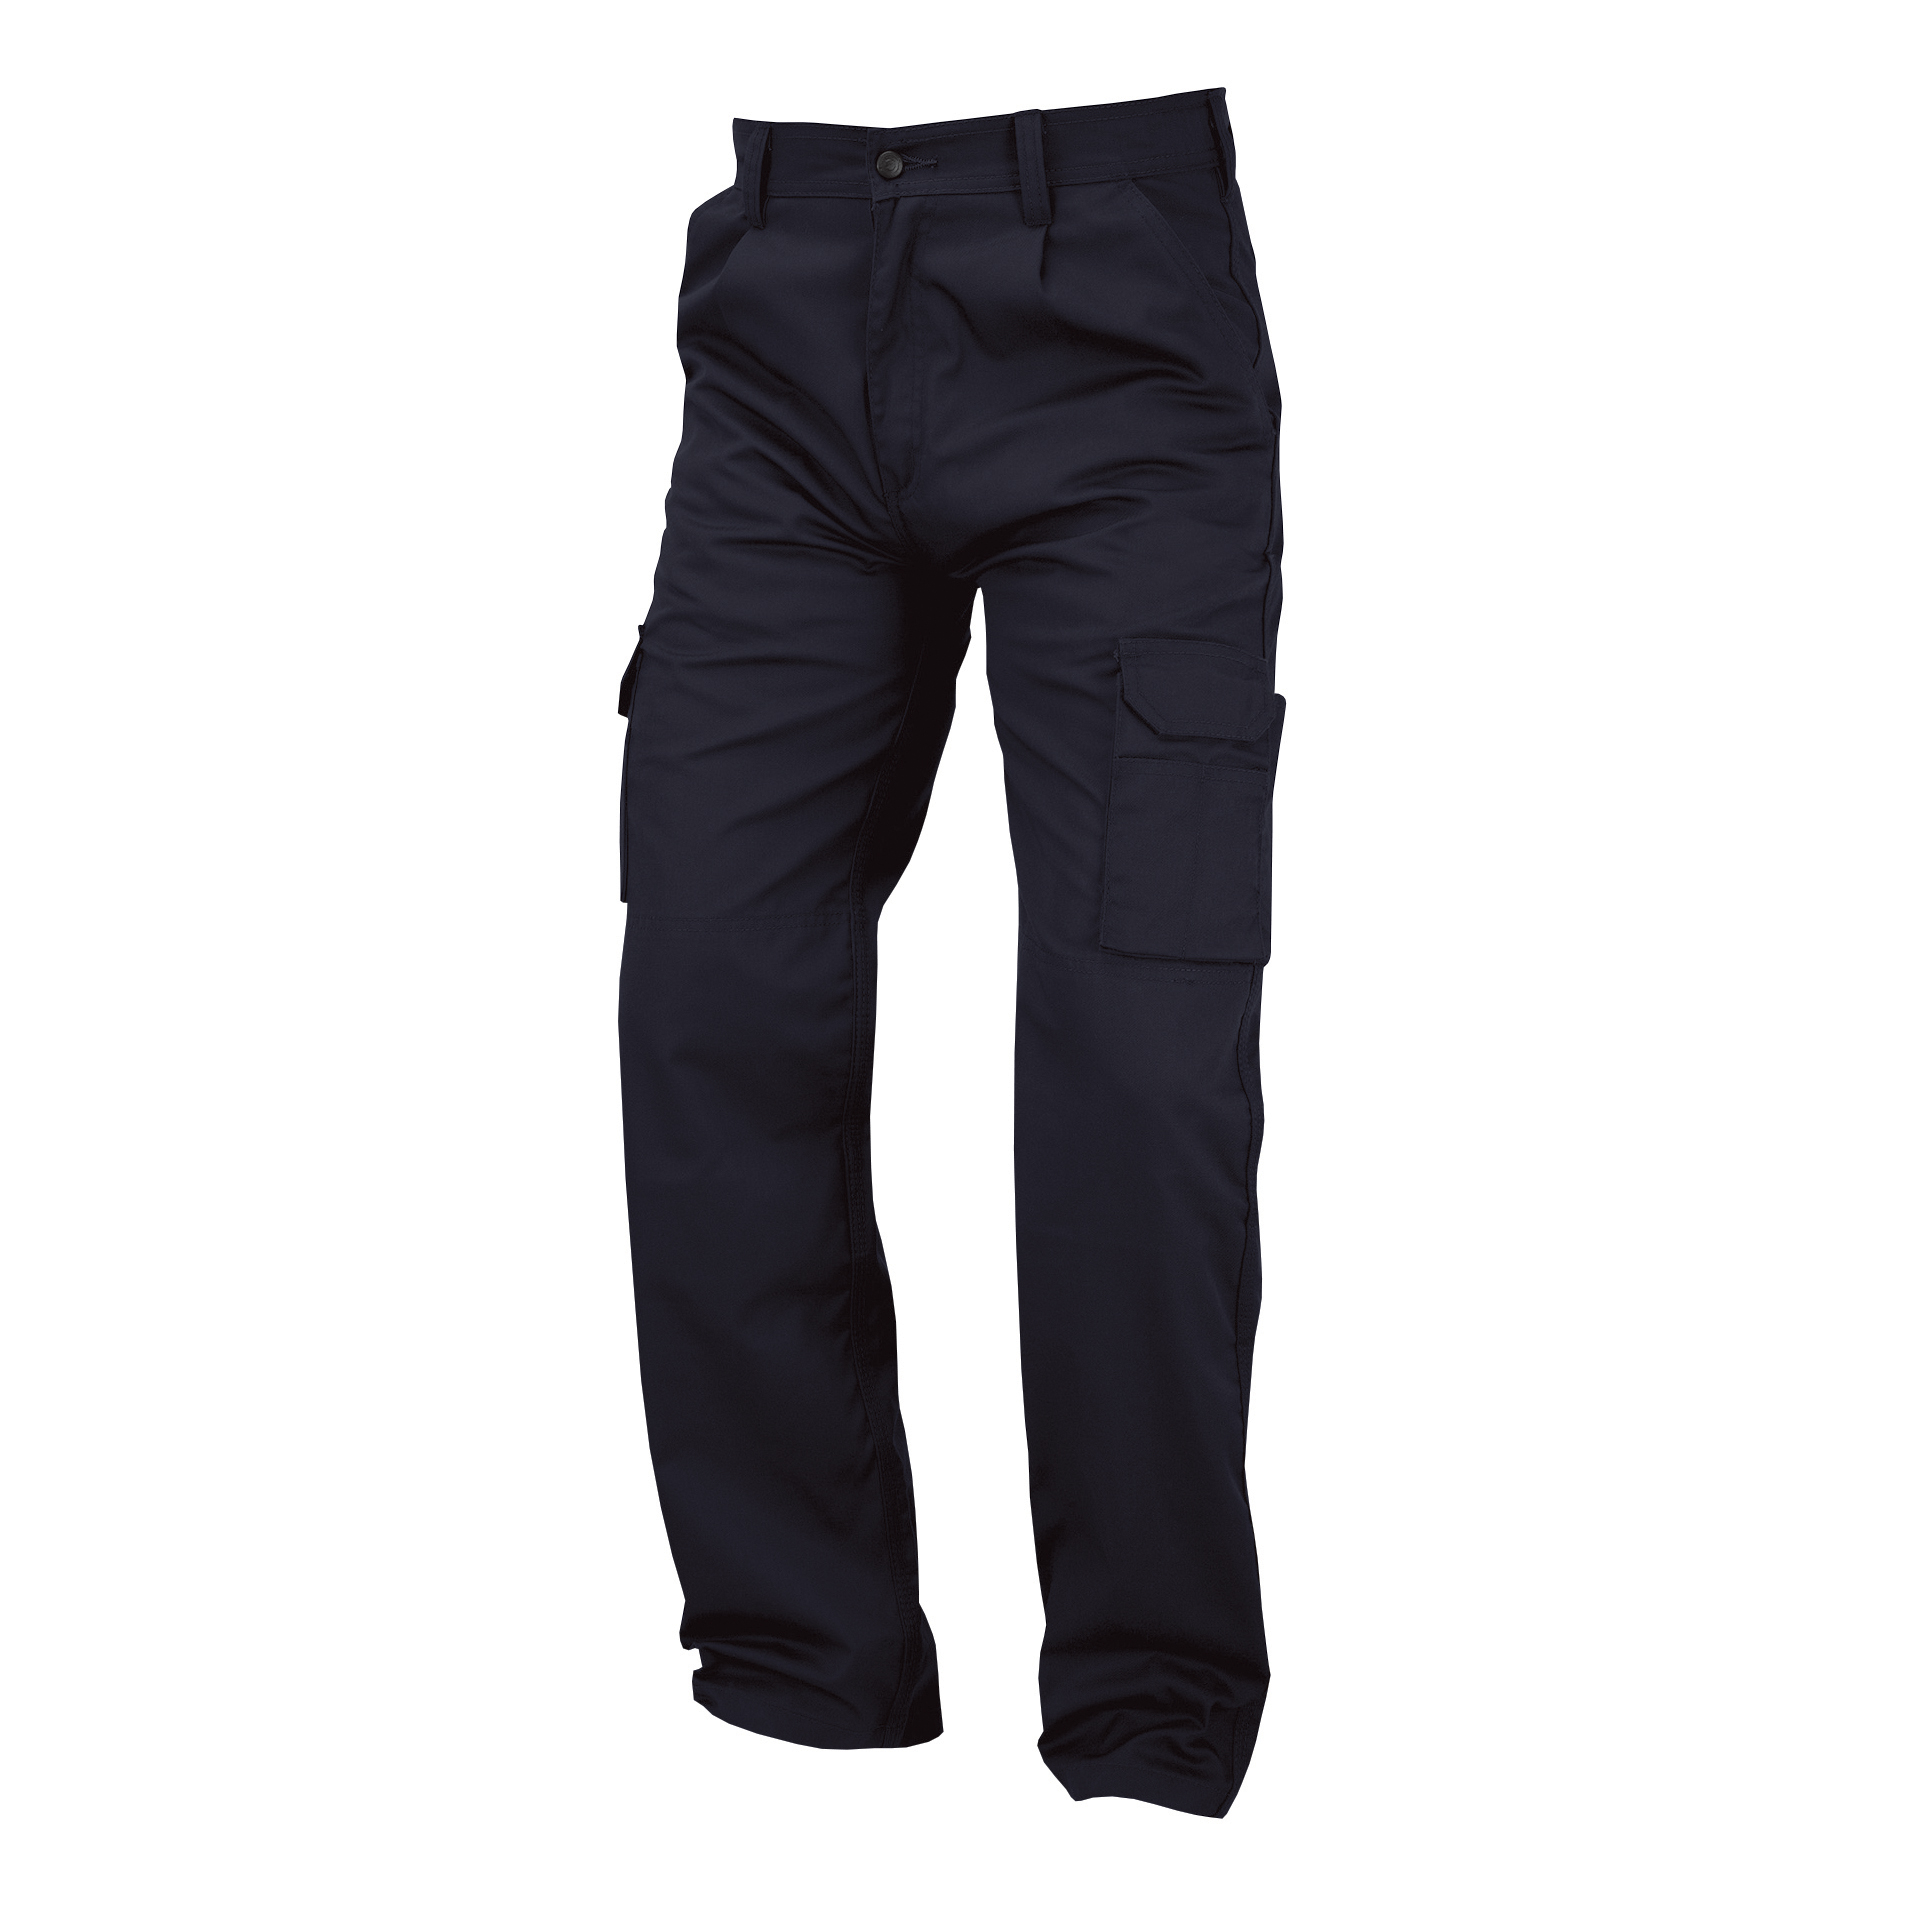 Business Kneepad Combat Trouser Multi-functional Waist 46in Leg 29in Navy